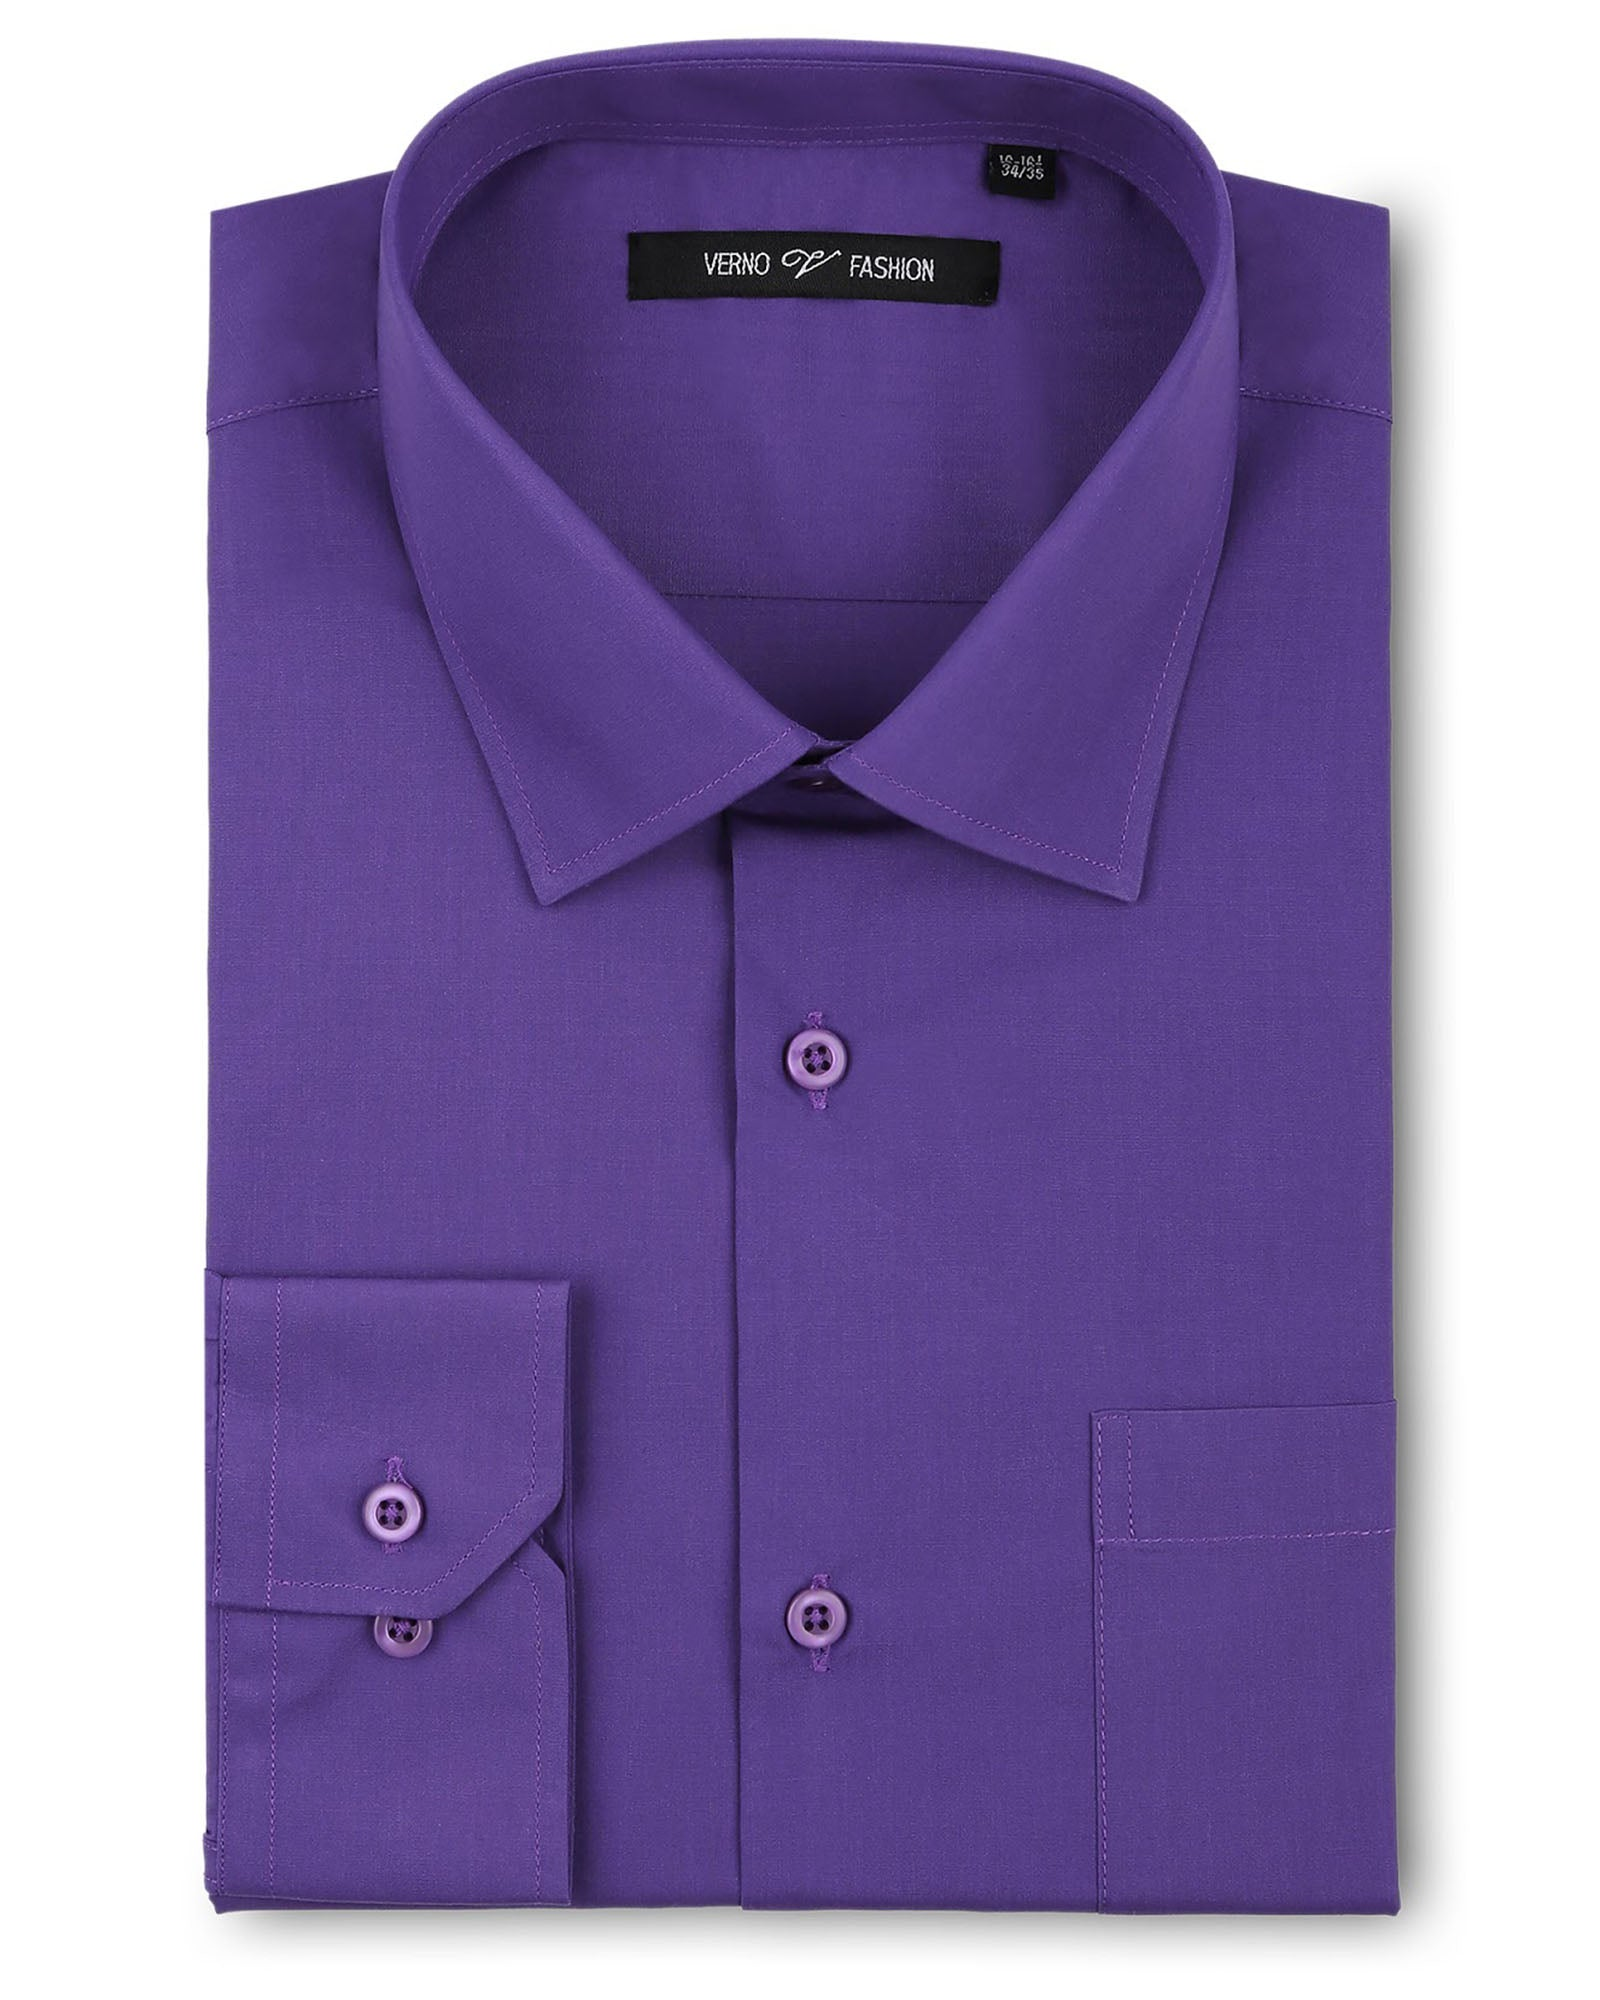 Verno Fashion Dress Shirt Polyester Cotton Blend in Lilac - Rainwater's